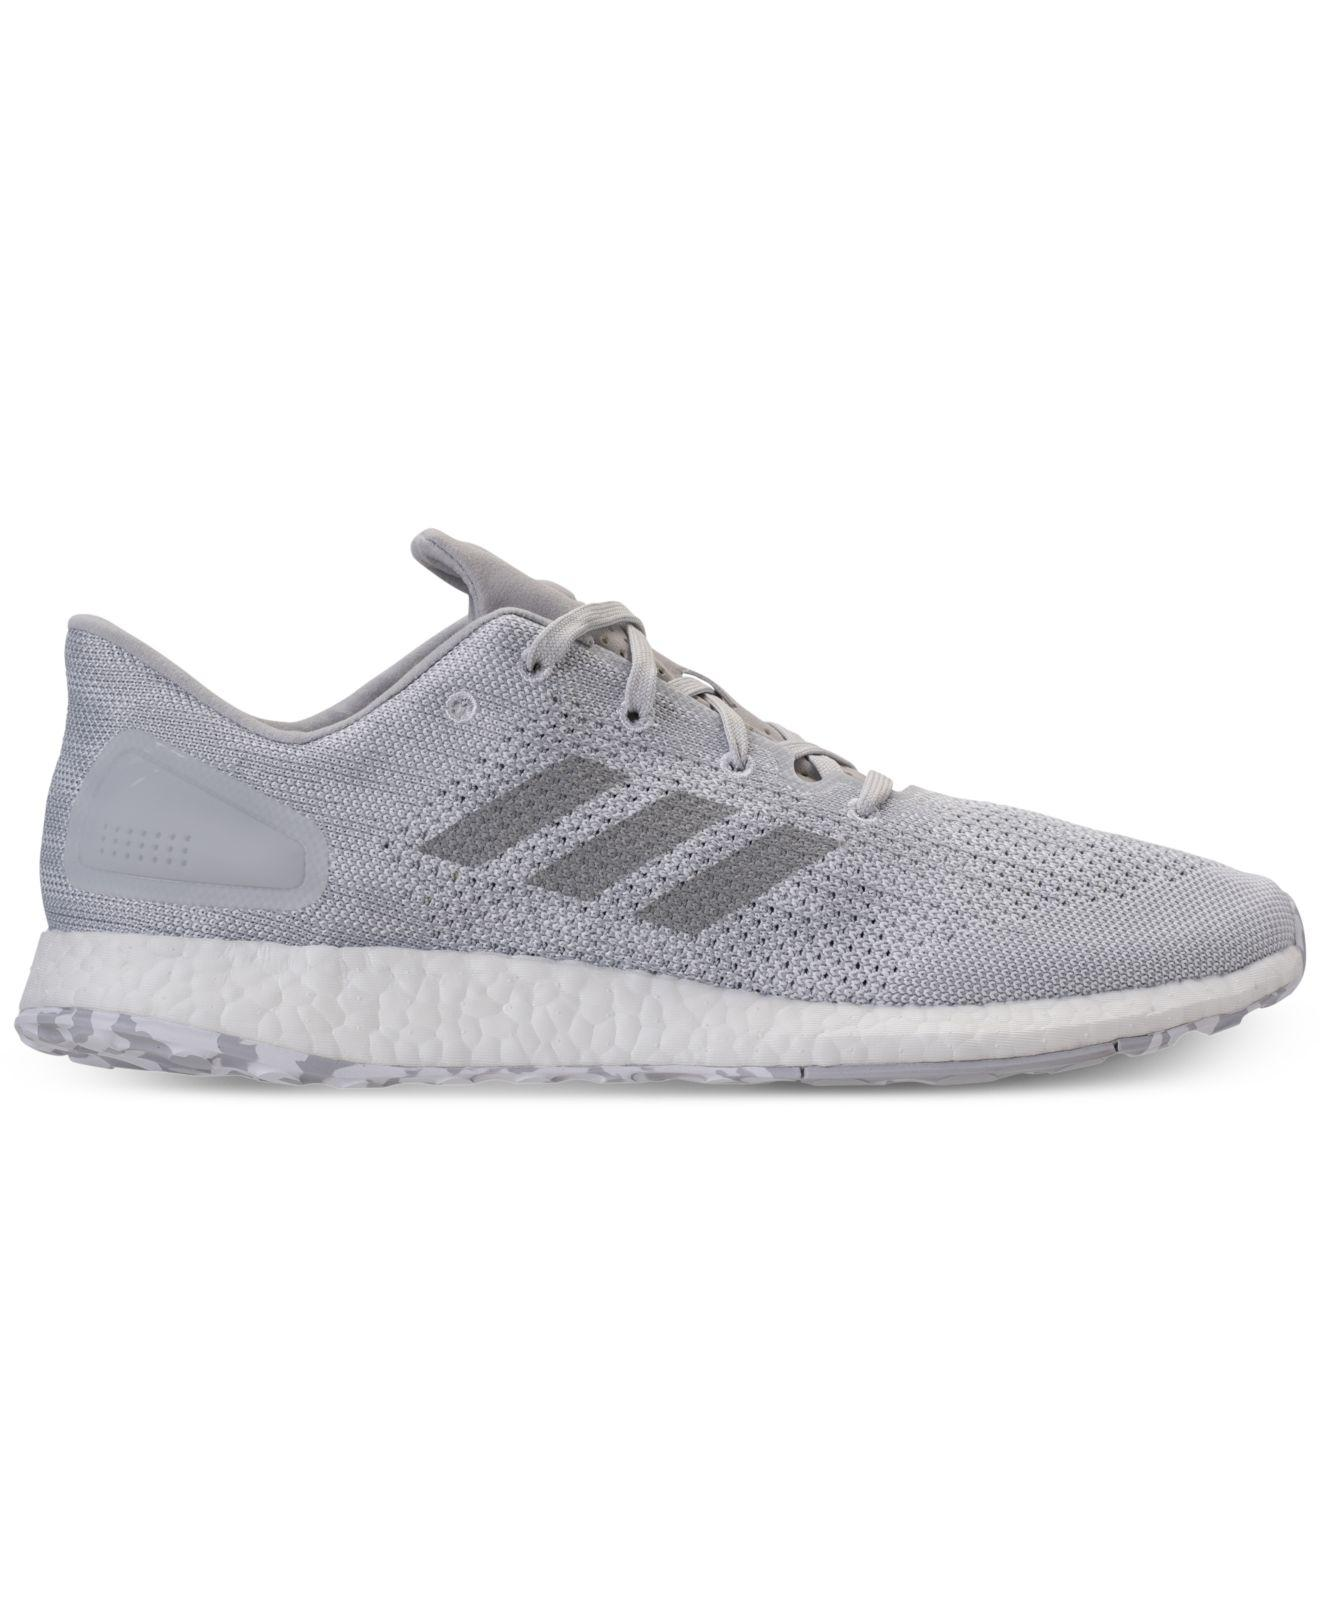 96b85665be376 Lyst - adidas Men s Pureboost Dpr Running Sneakers From Finish Line ...